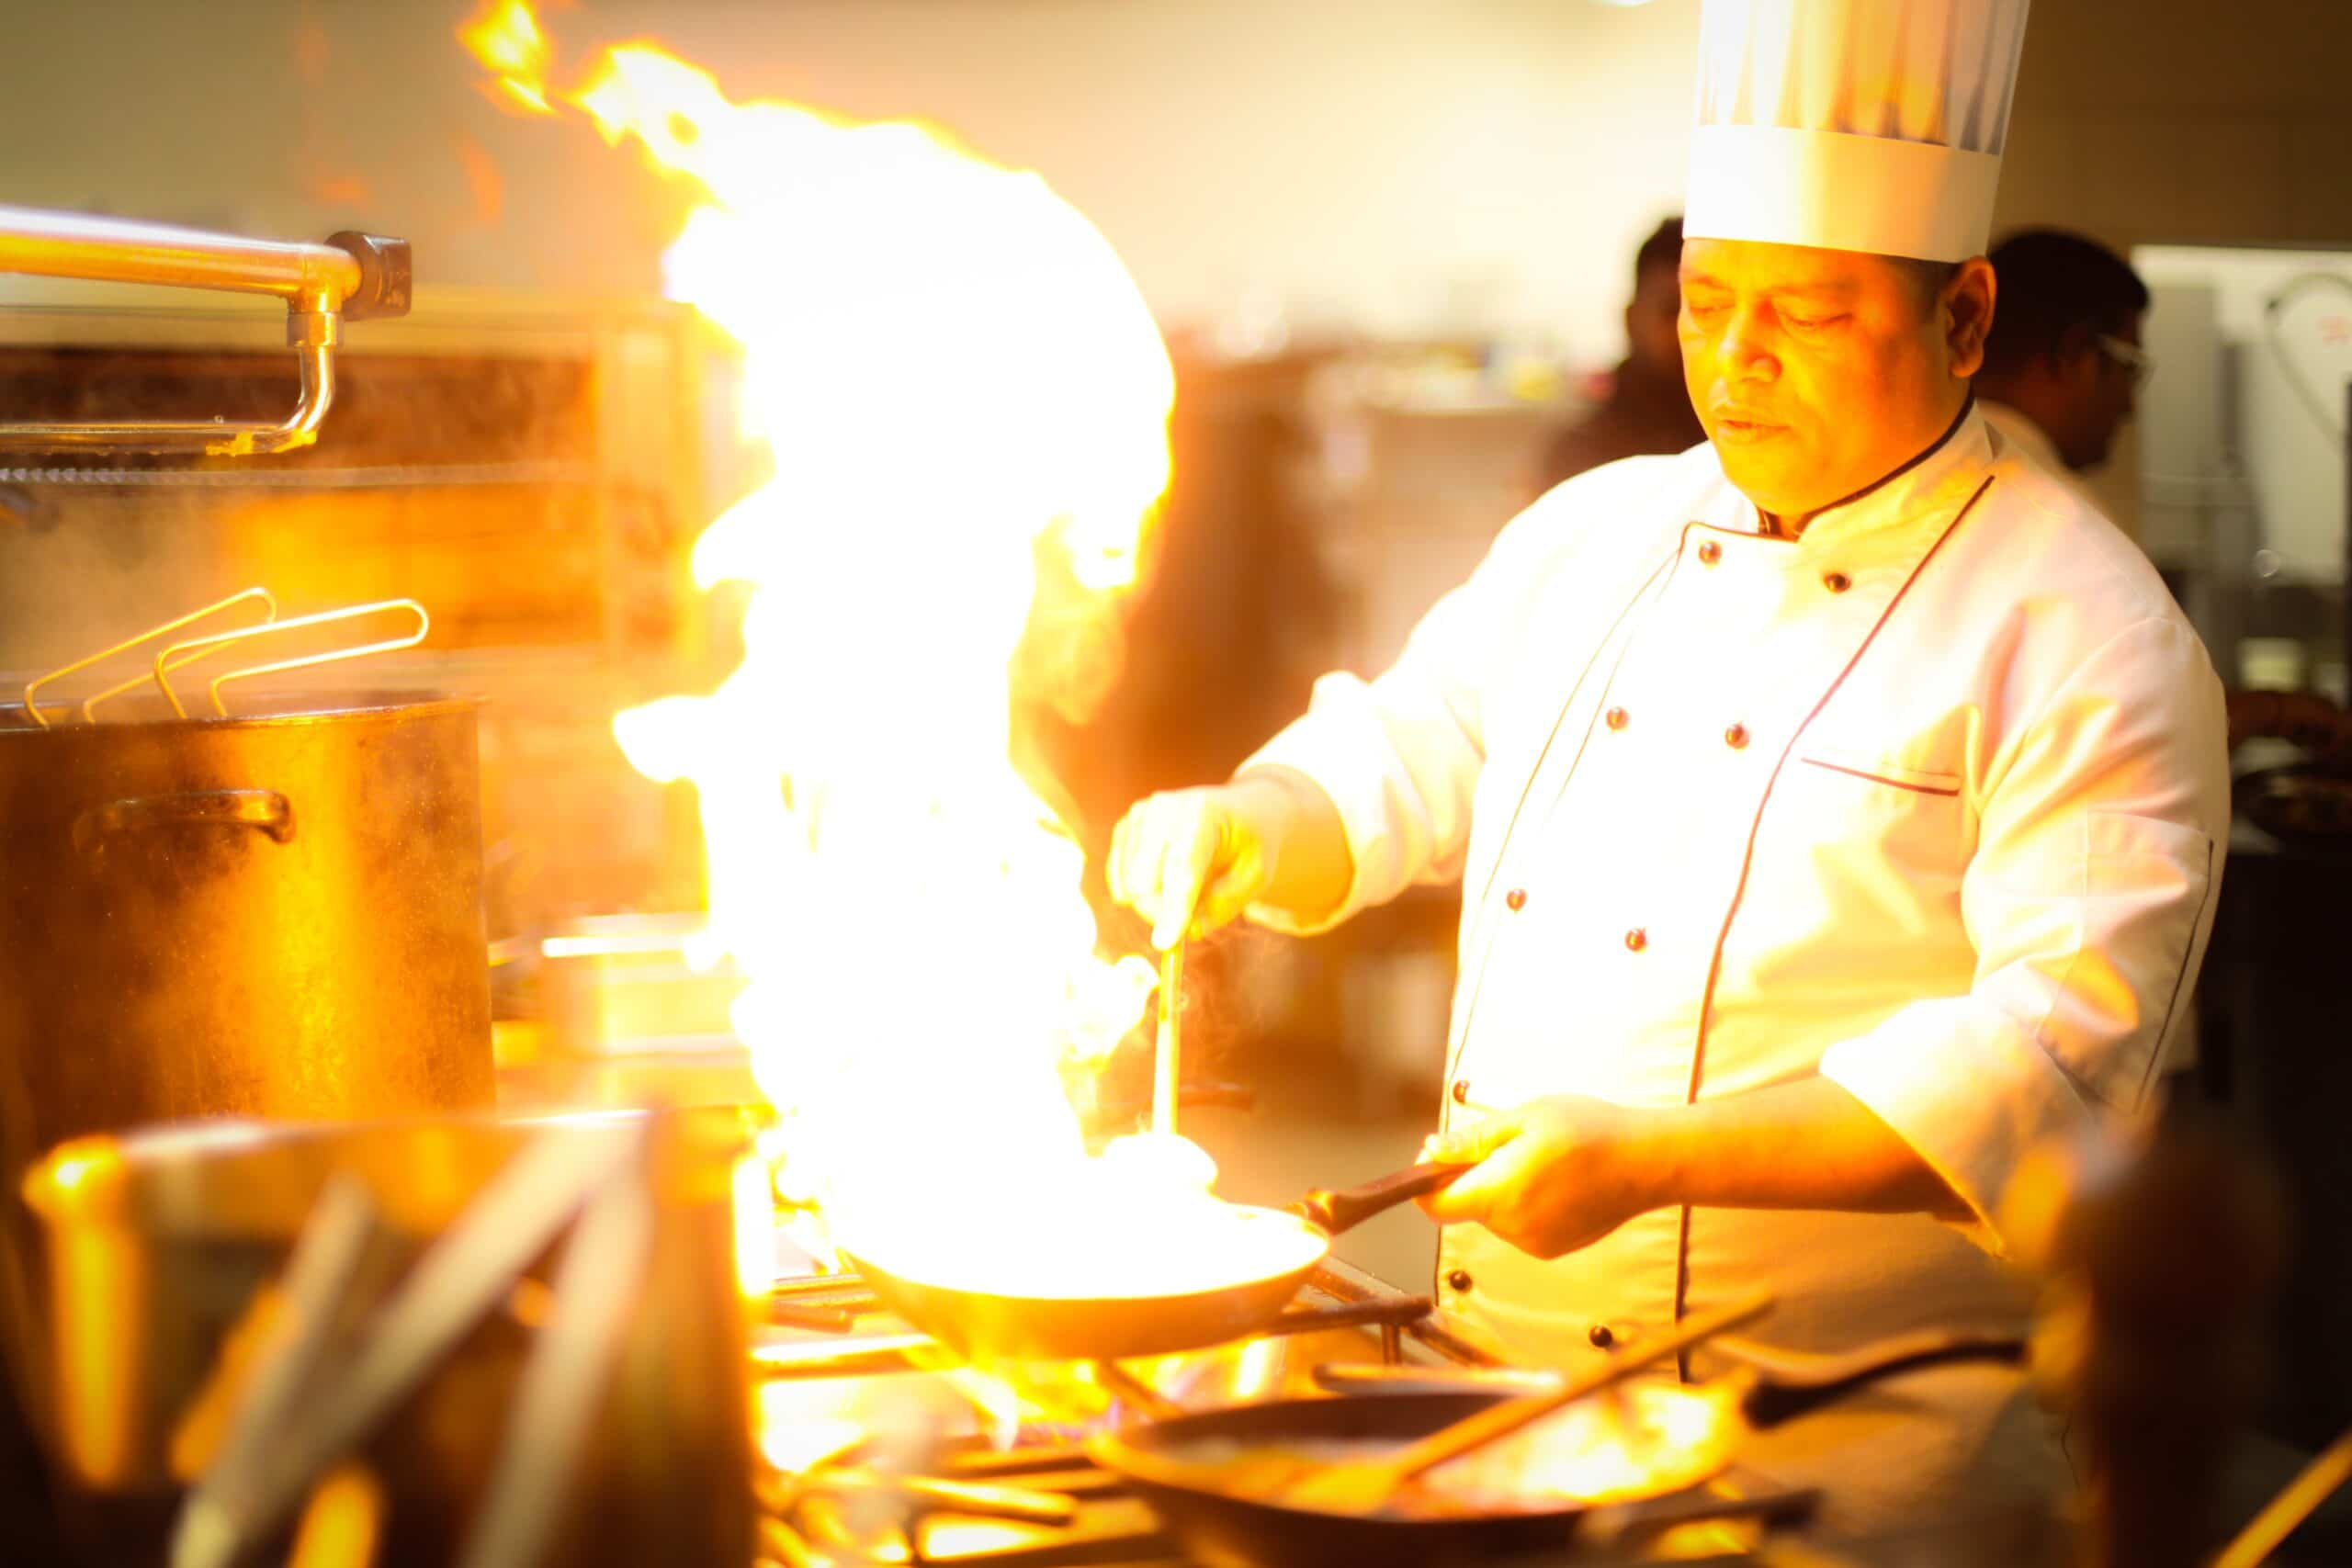 Do you ask a Michelin Star Chef how they cook eggs?